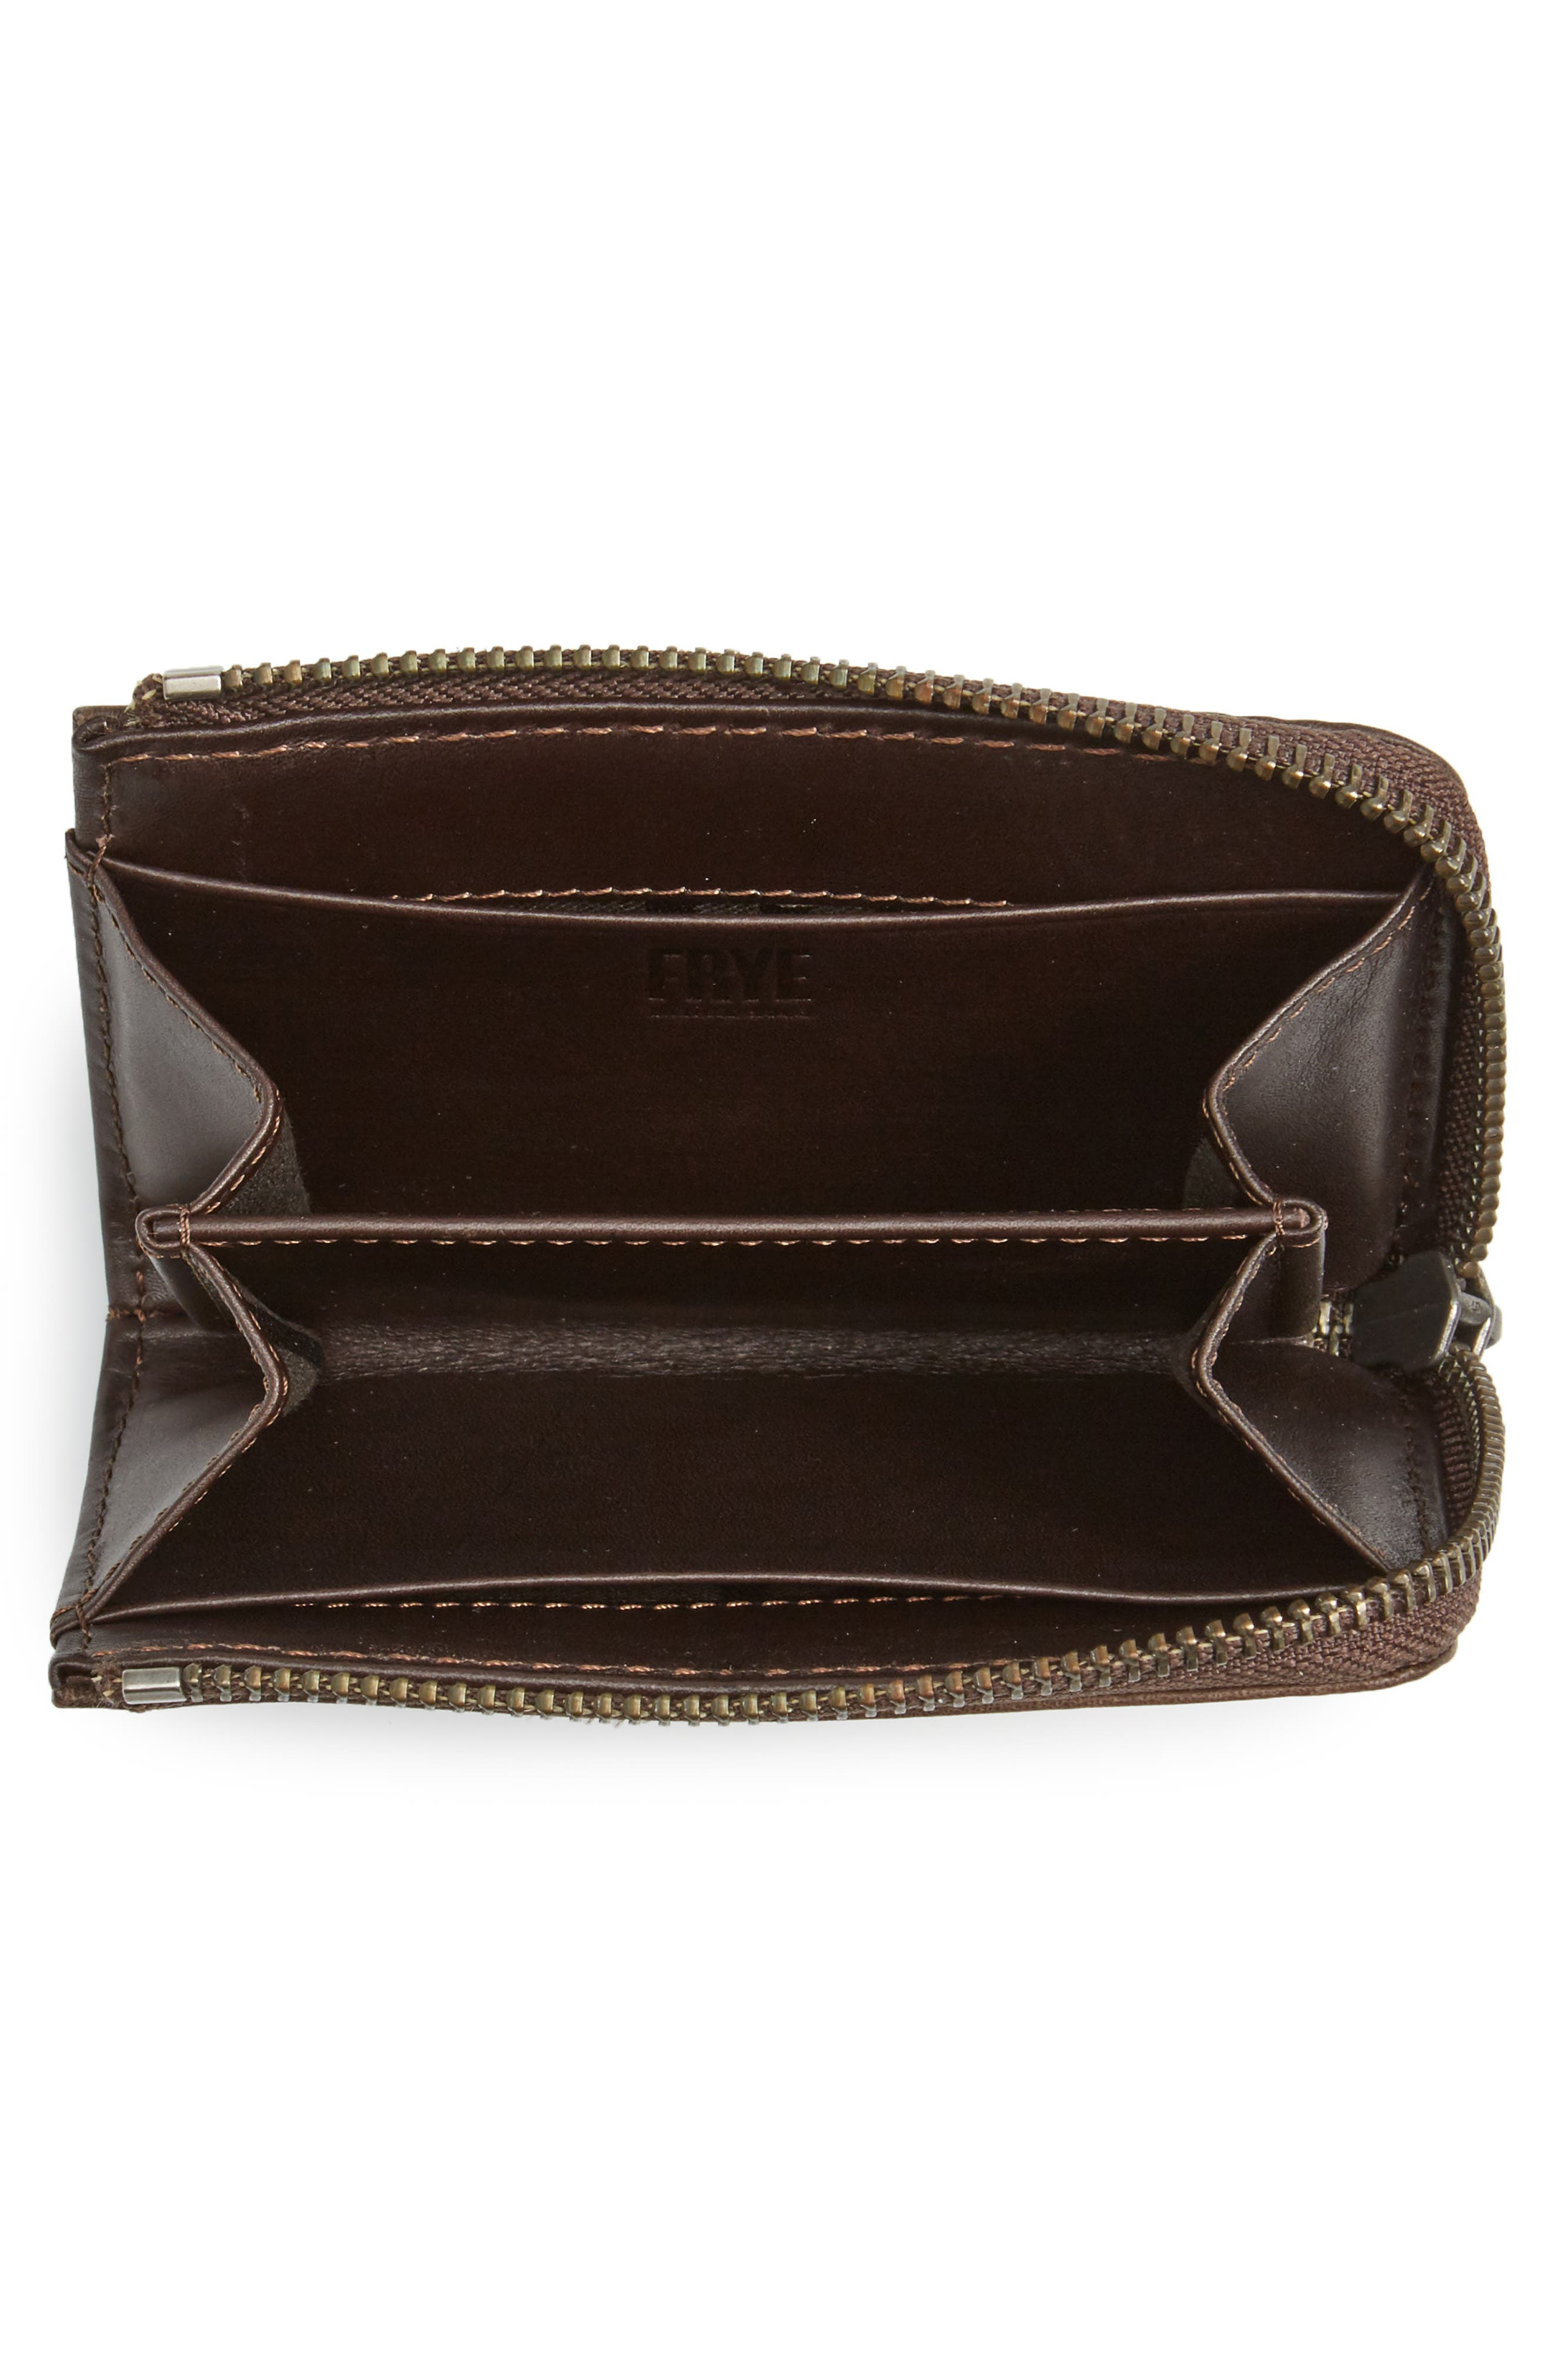 Small Melissa Leather Zip Wallet,                             Alternate thumbnail 2, color,                             203